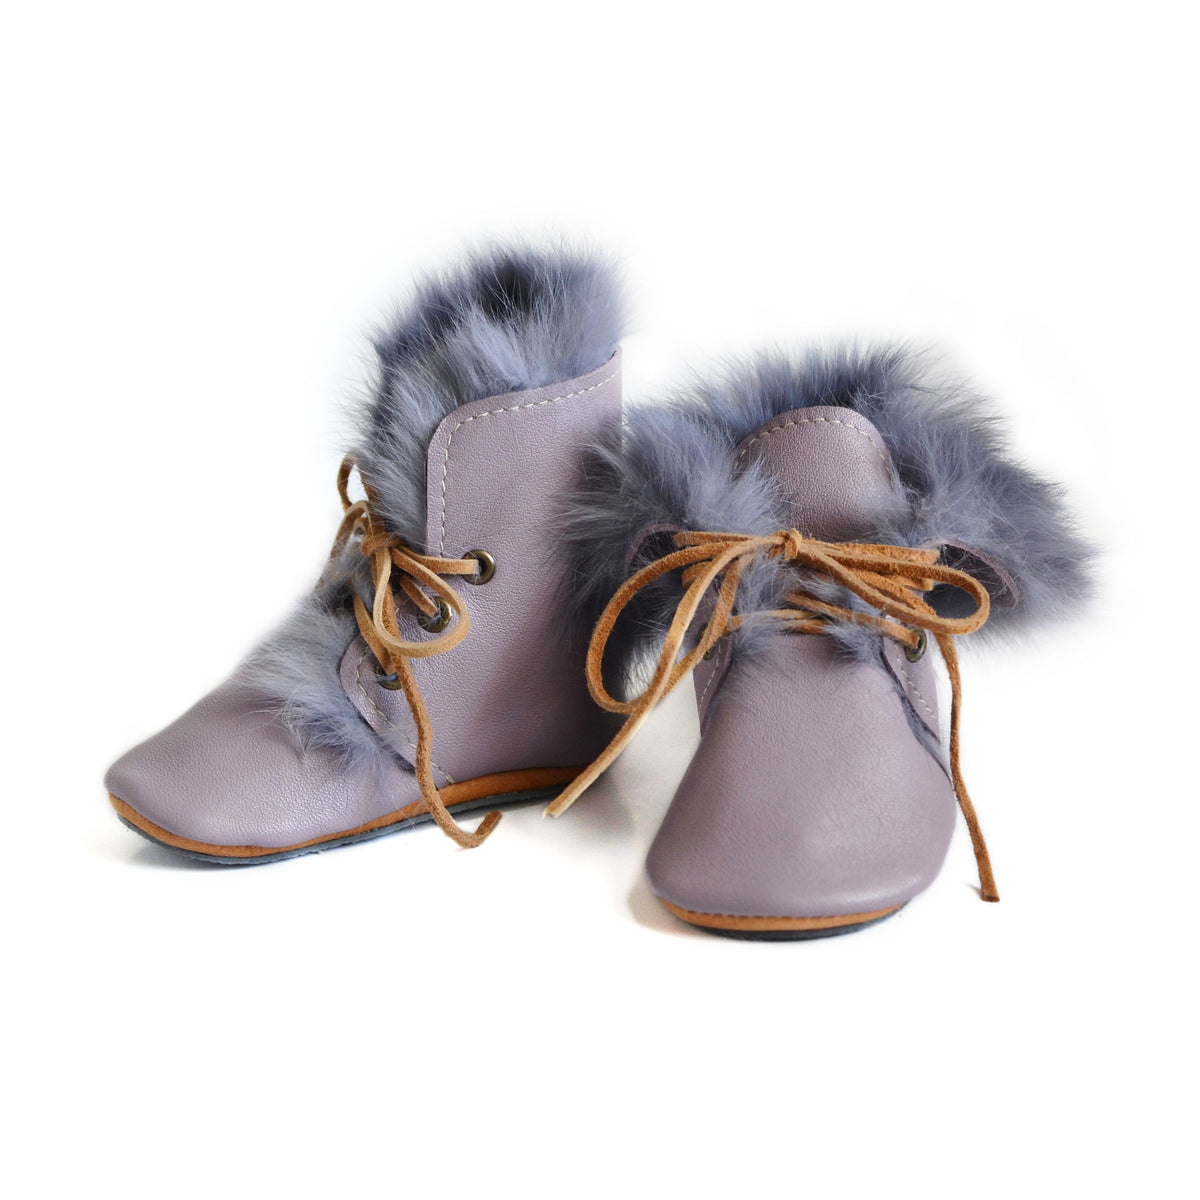 RTS- Lavender Fur Boot Size 4